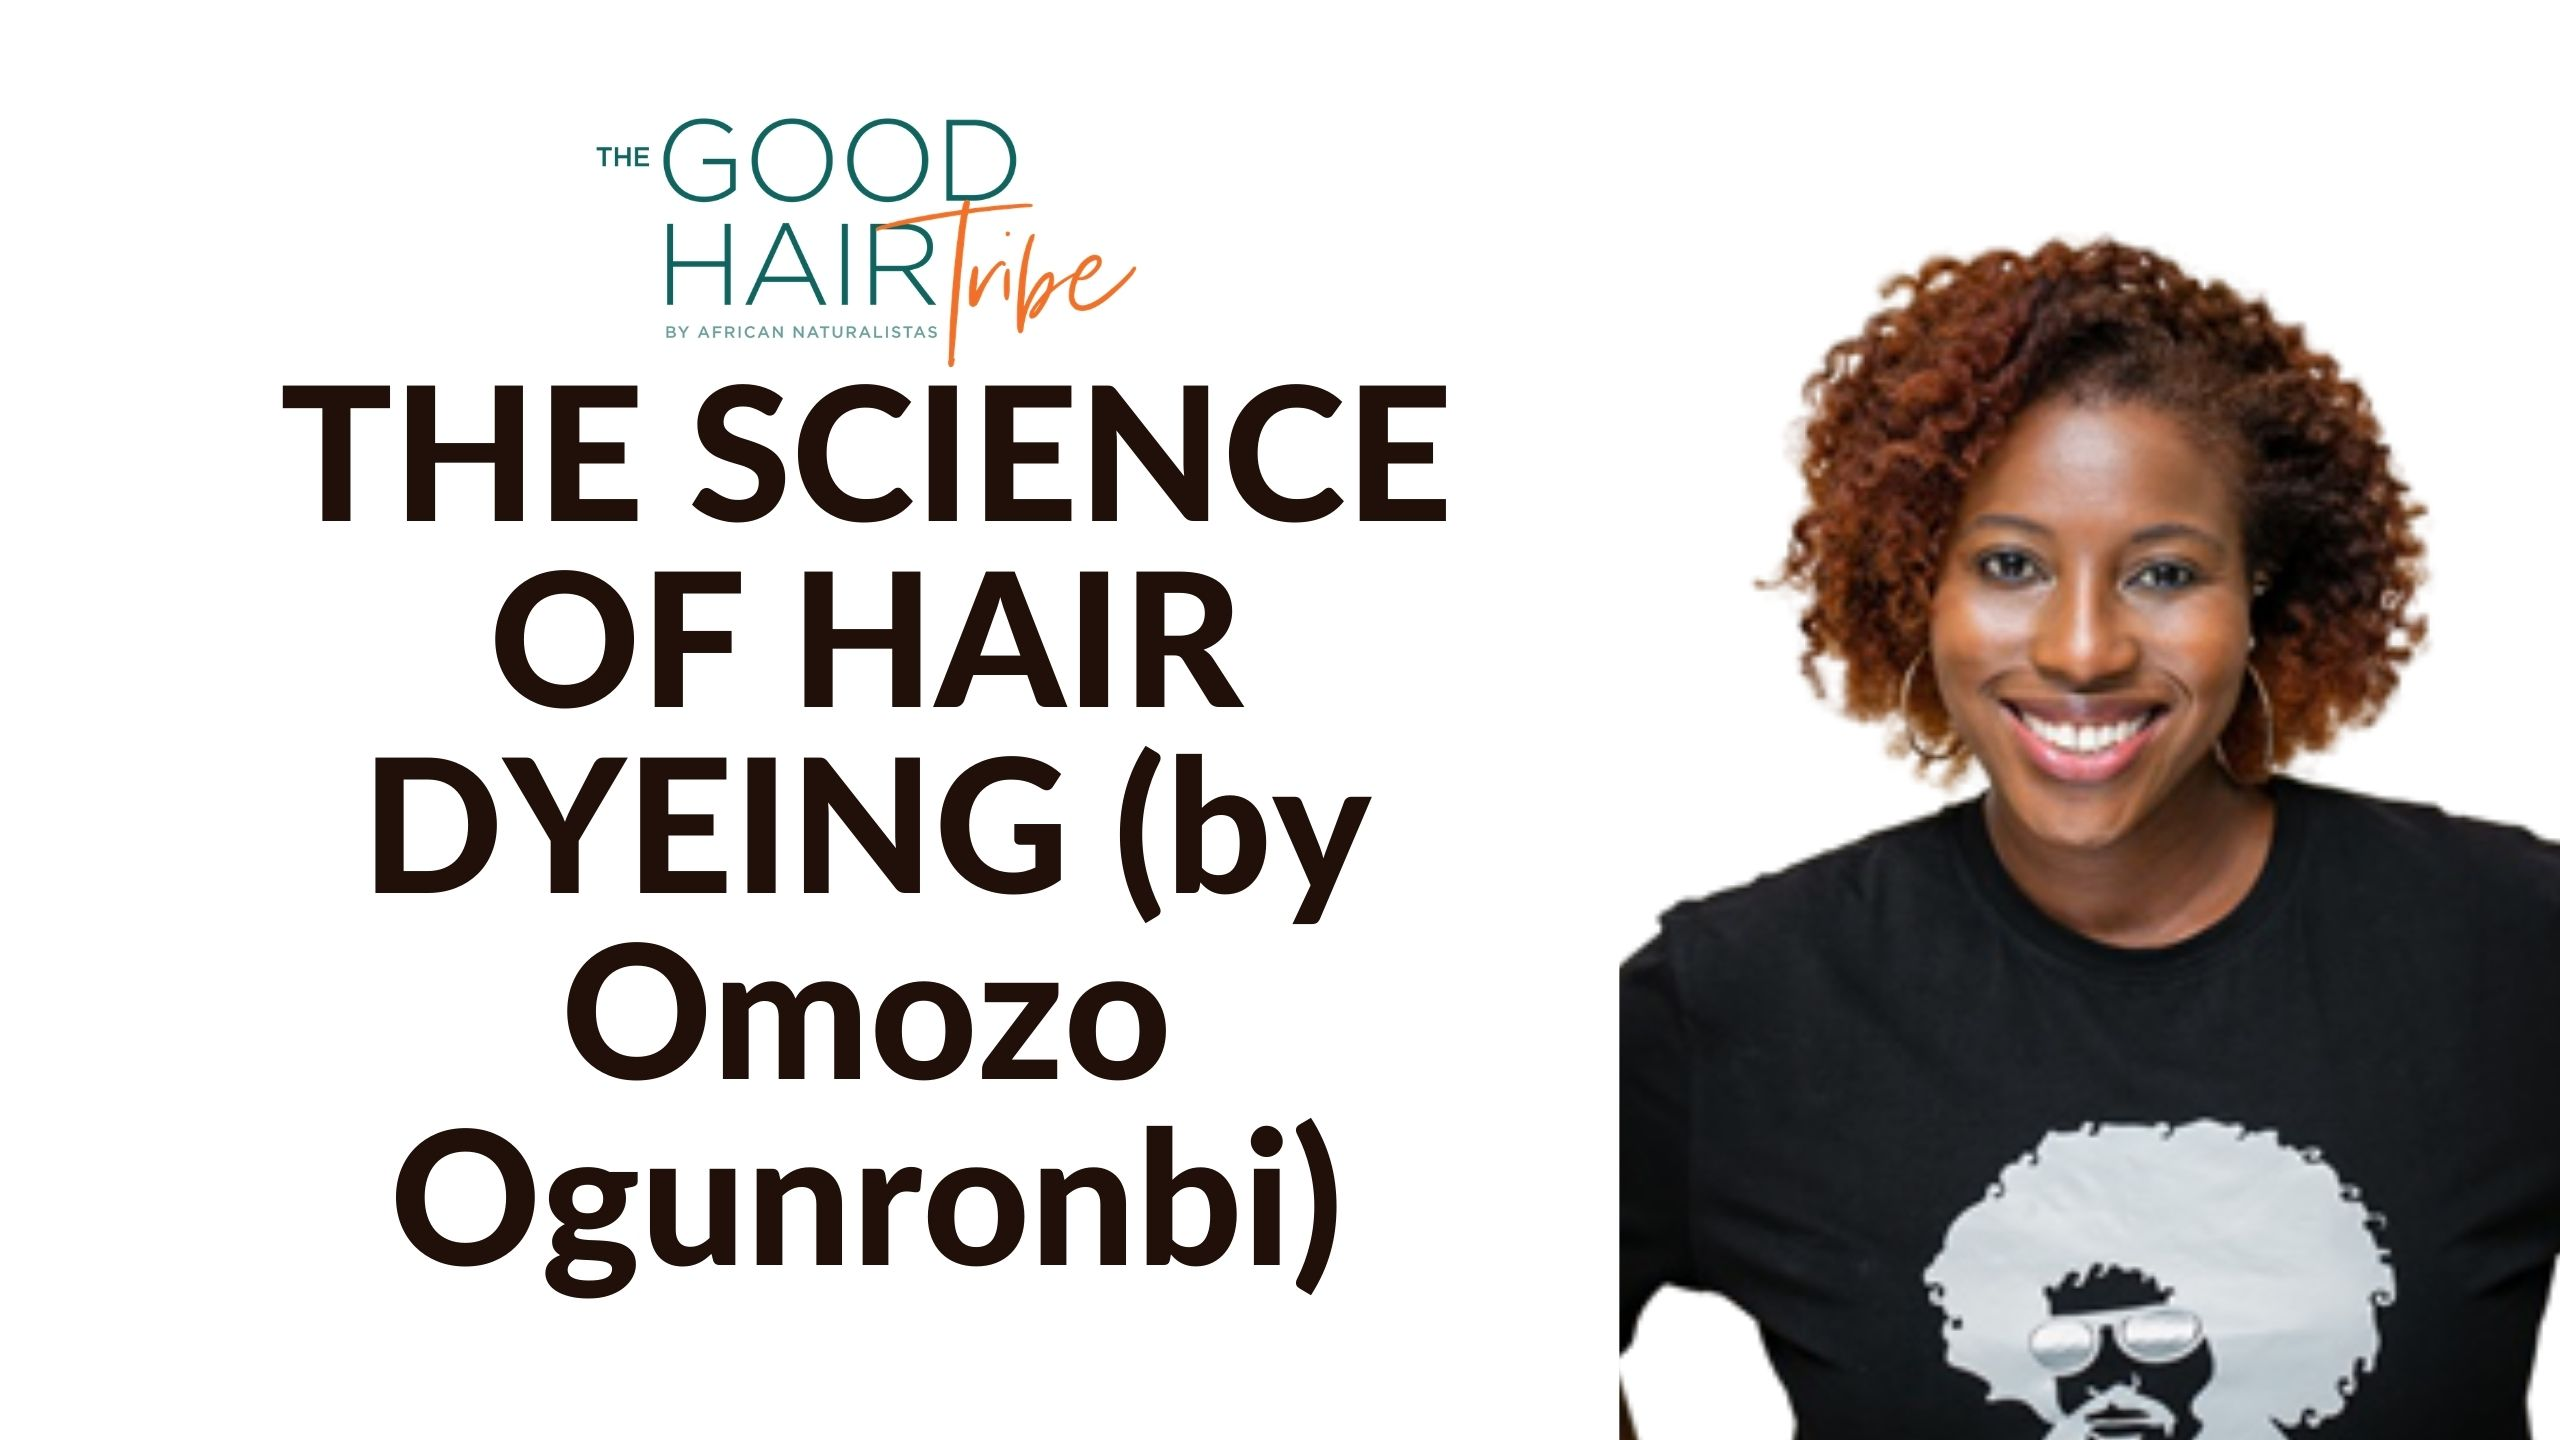 The Science of Hair Dyeing